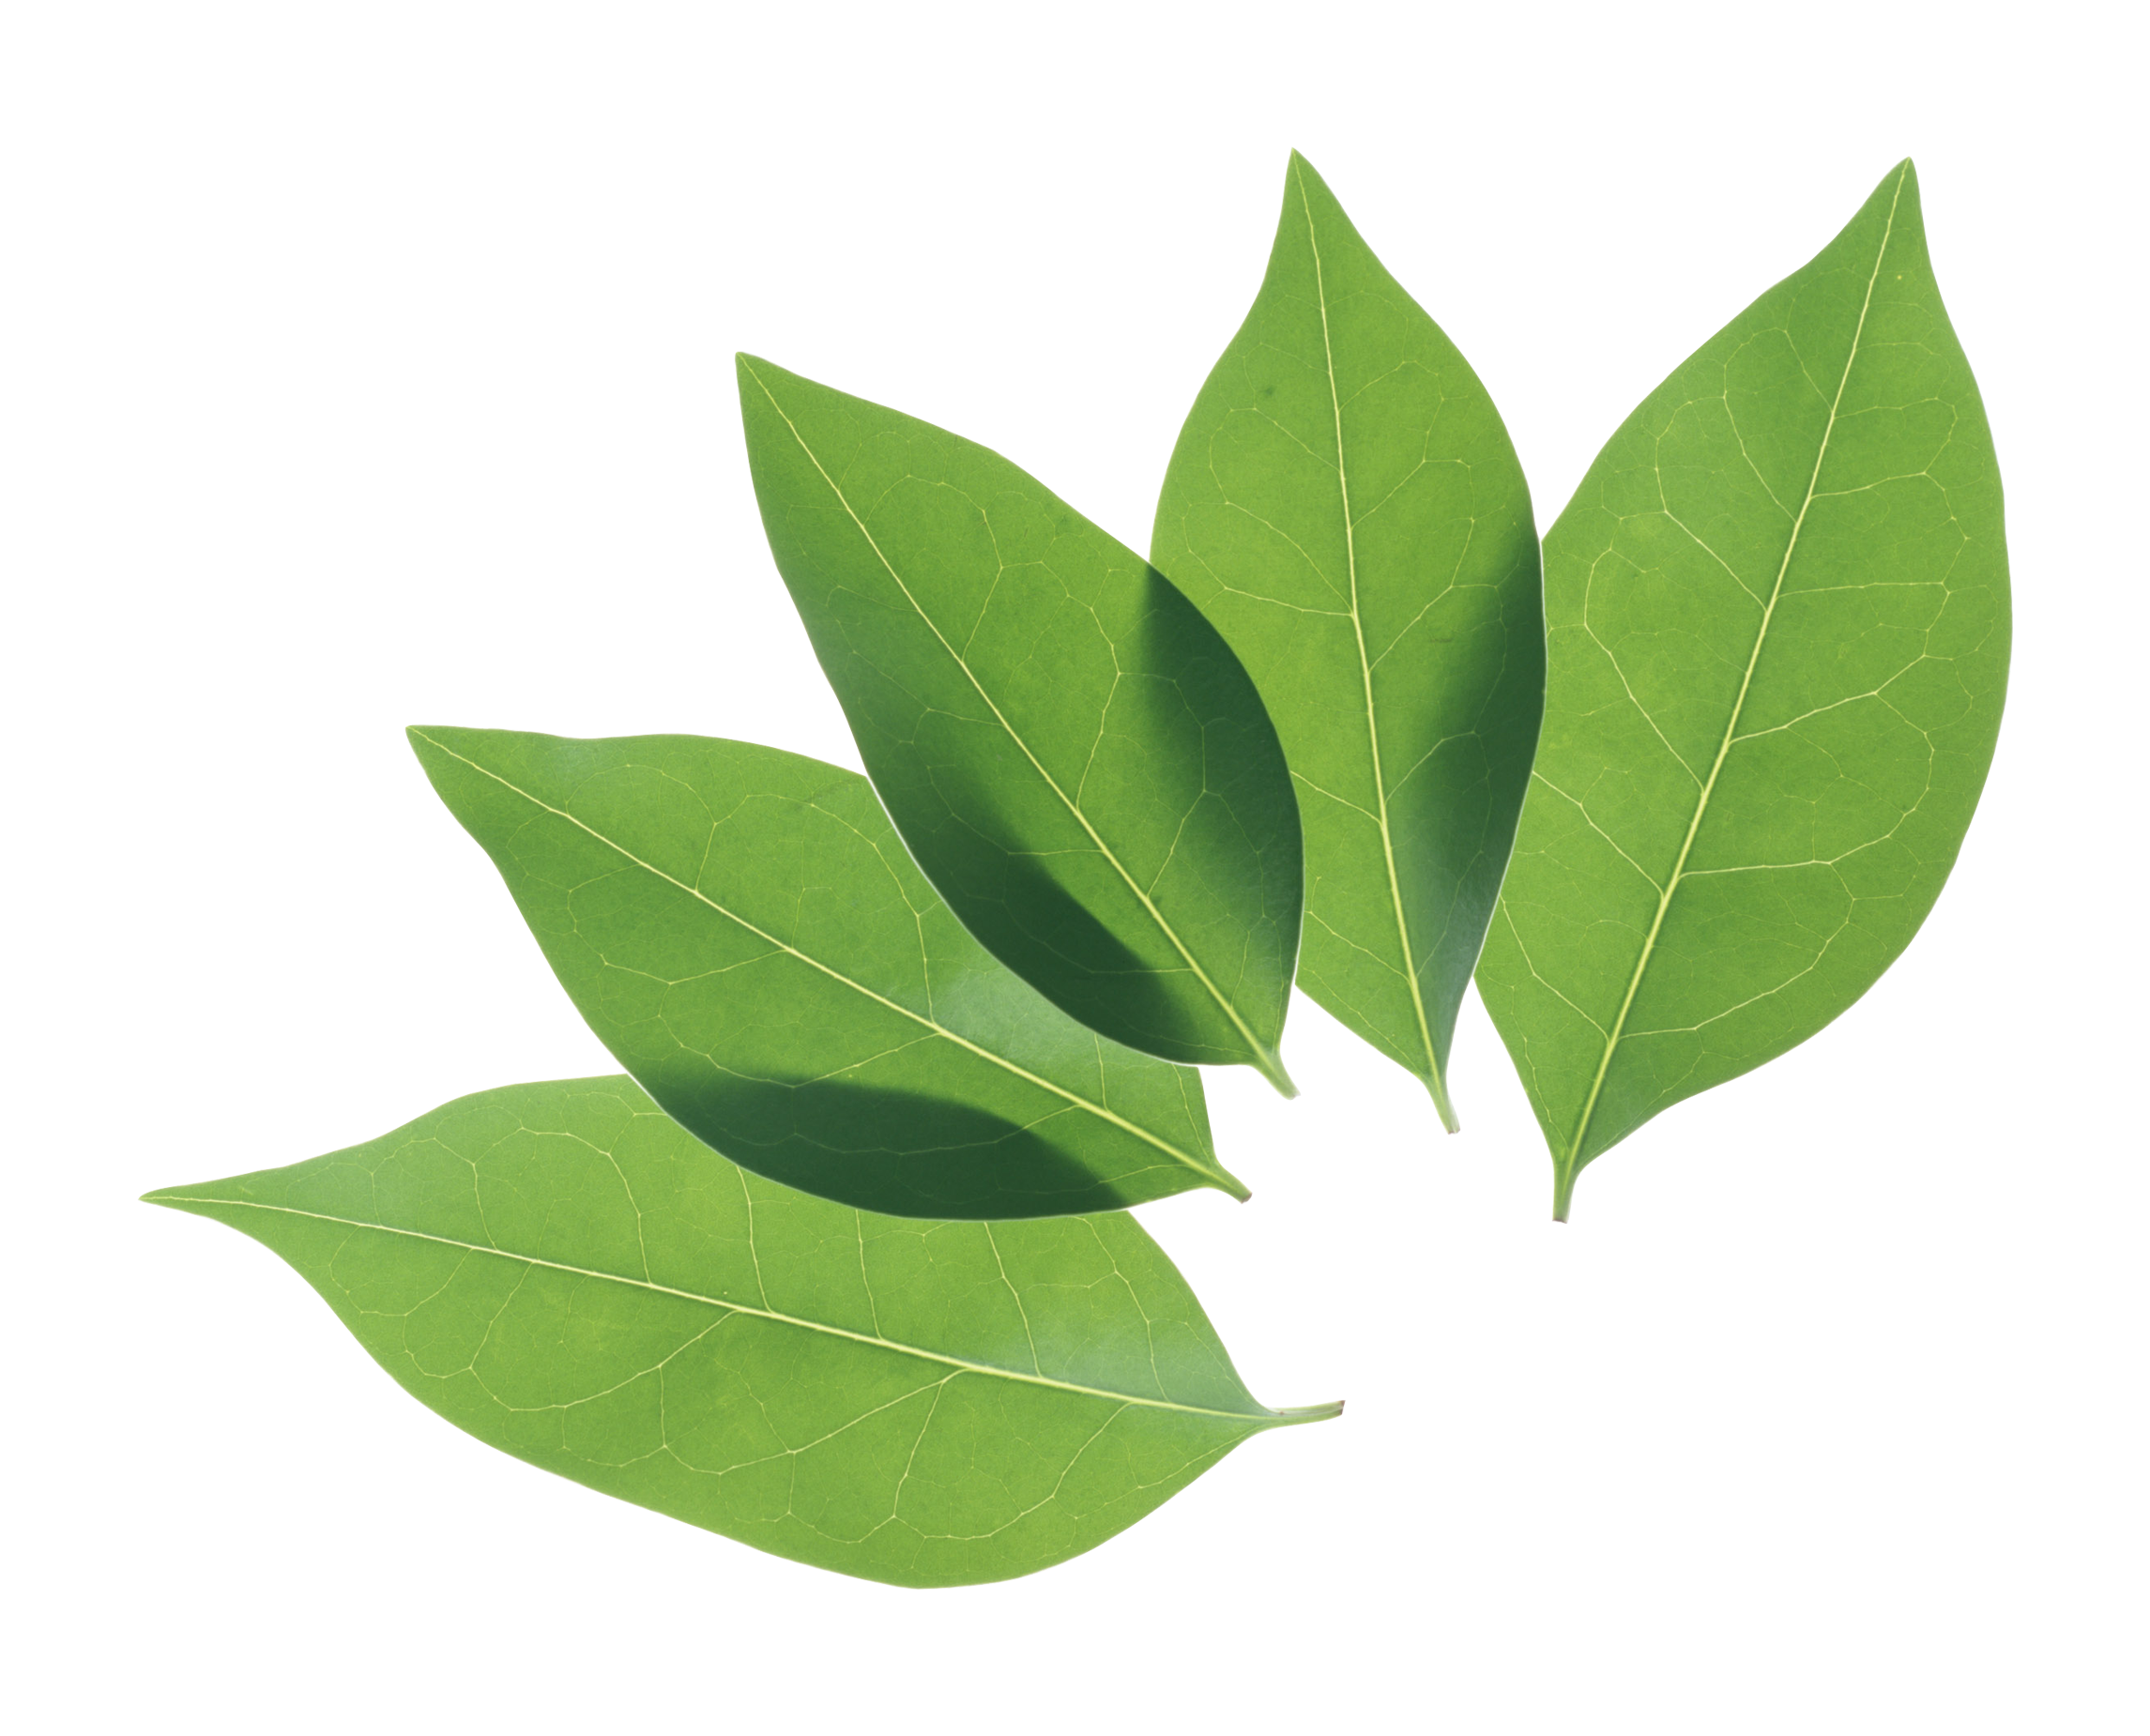 green_leaves_PNG3645